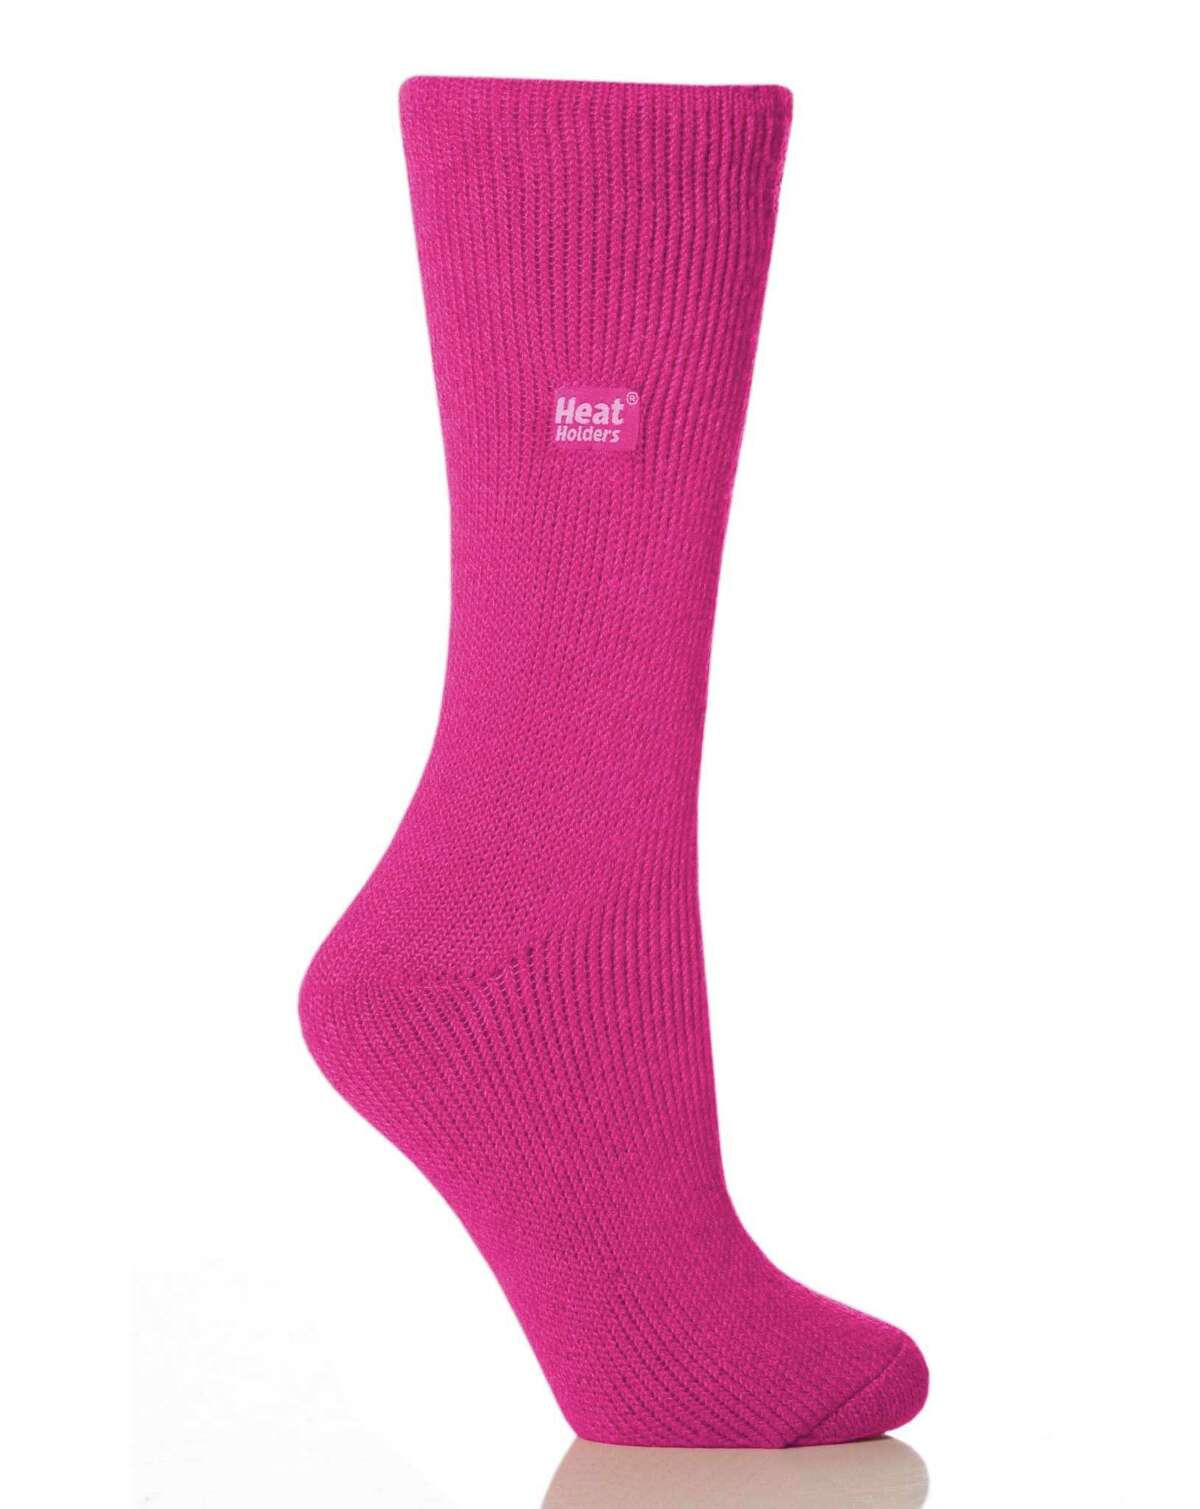 Heat Holders are thermal socks designed to hold warm air close to the wearer's feet, keeping the feet warmer than standard thermal socks.